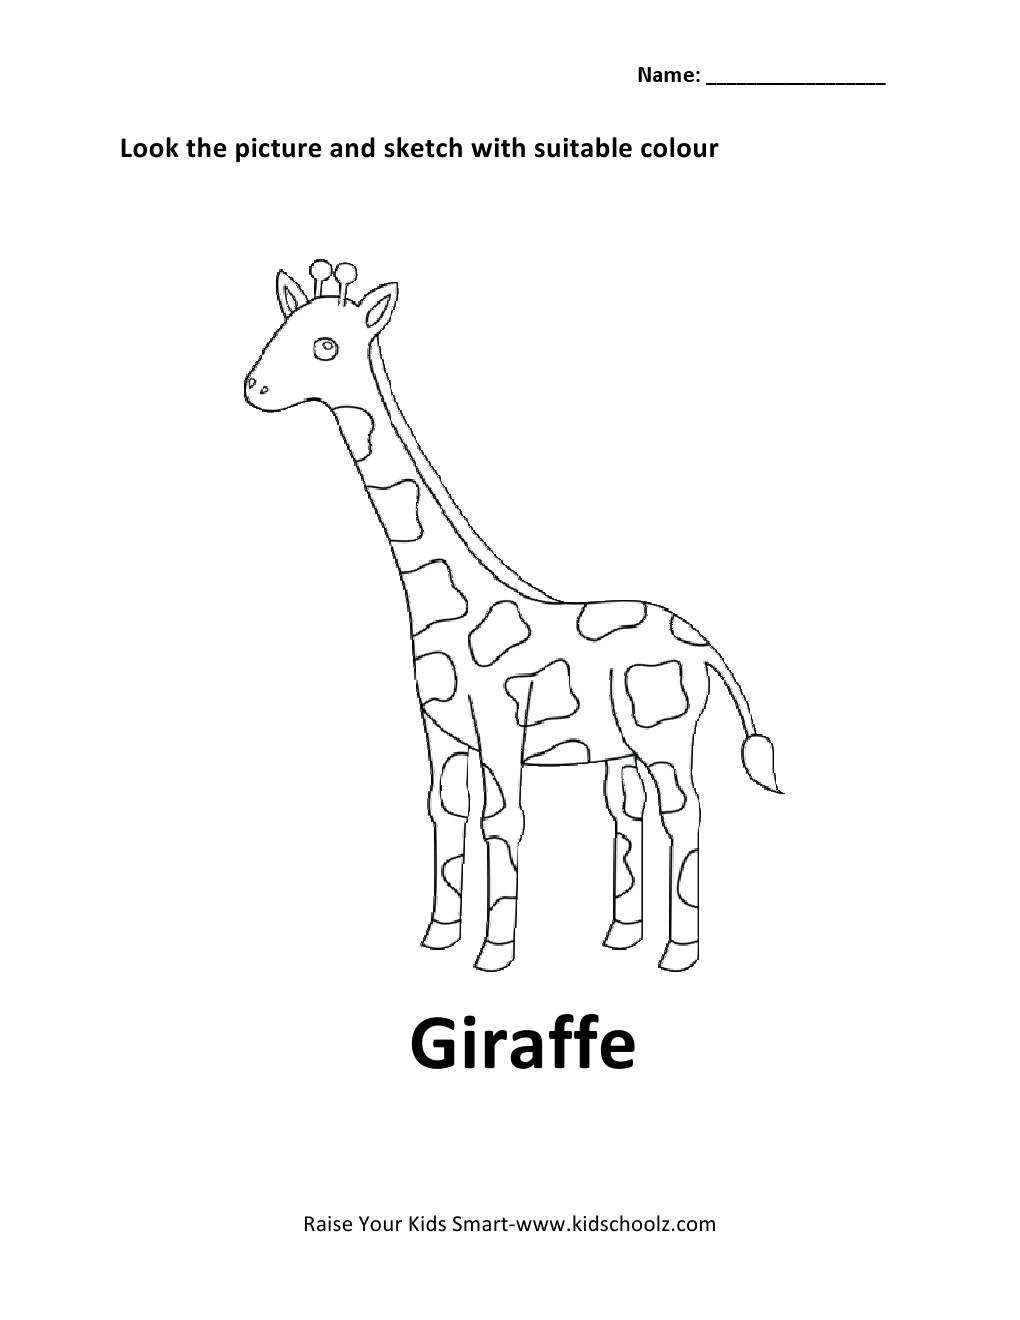 Giraffe Preschool Worksheet. Giraffe. Best Free Printable